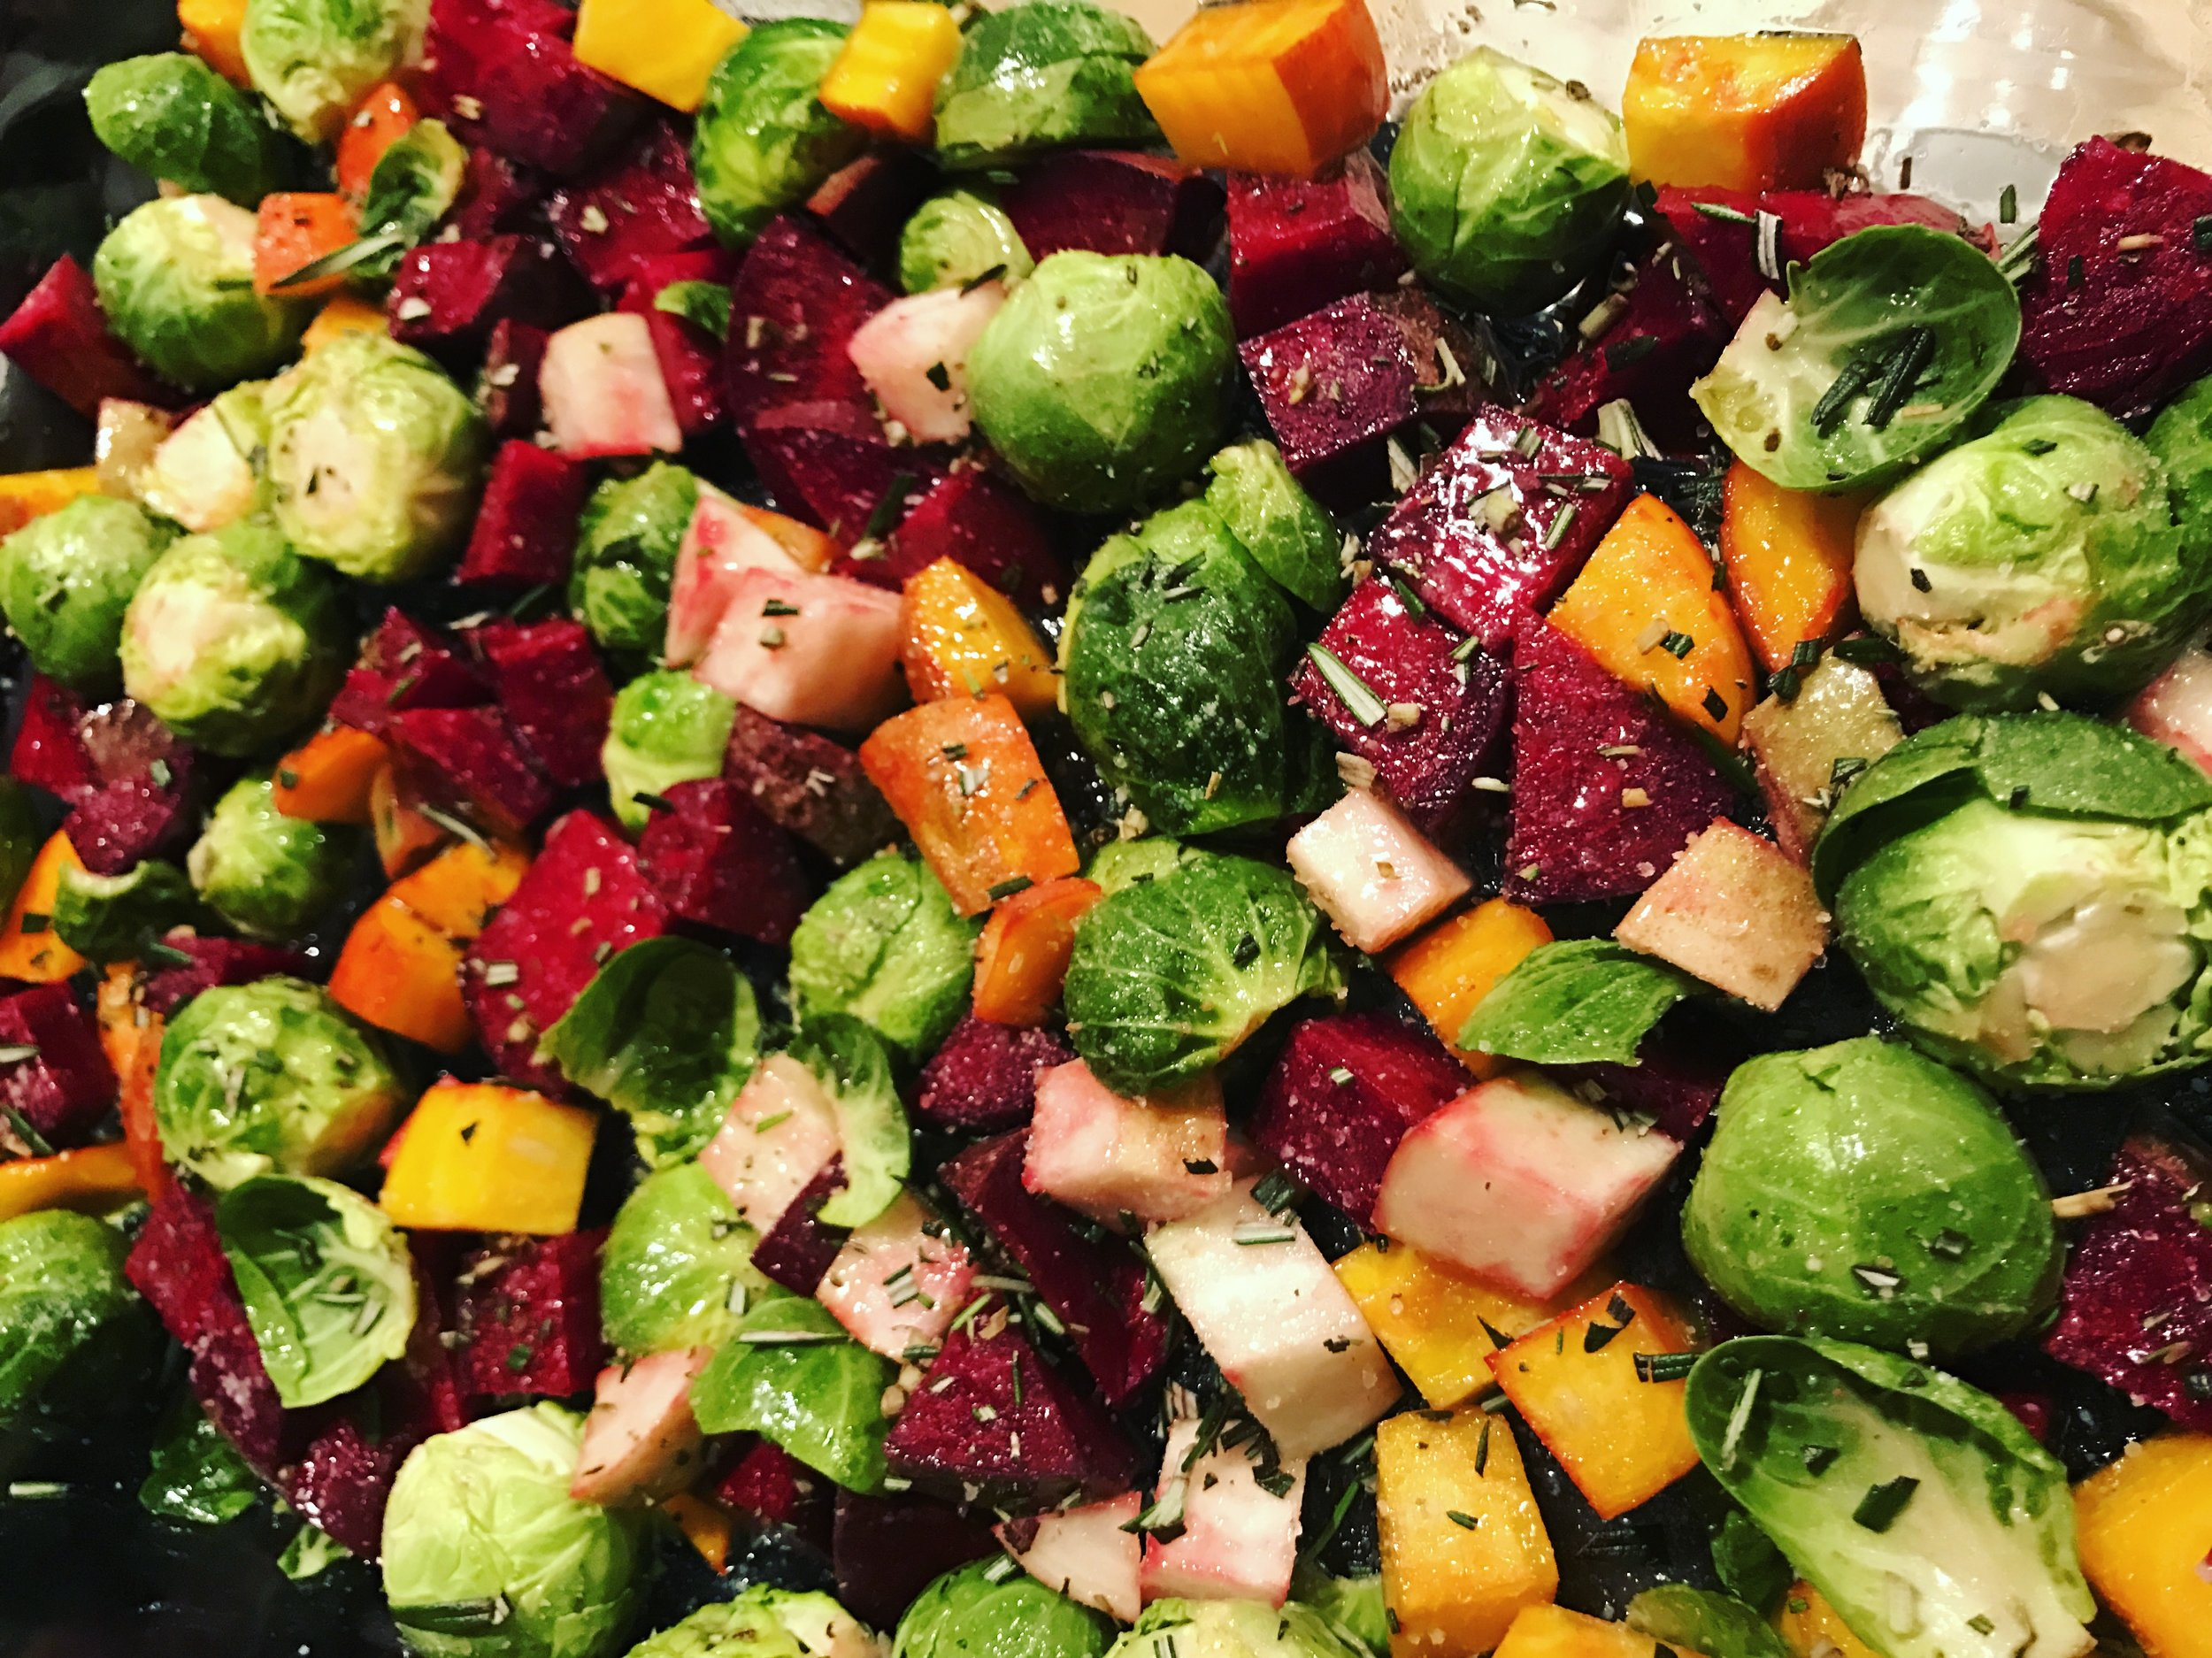 Beets and Brussel Sprouts